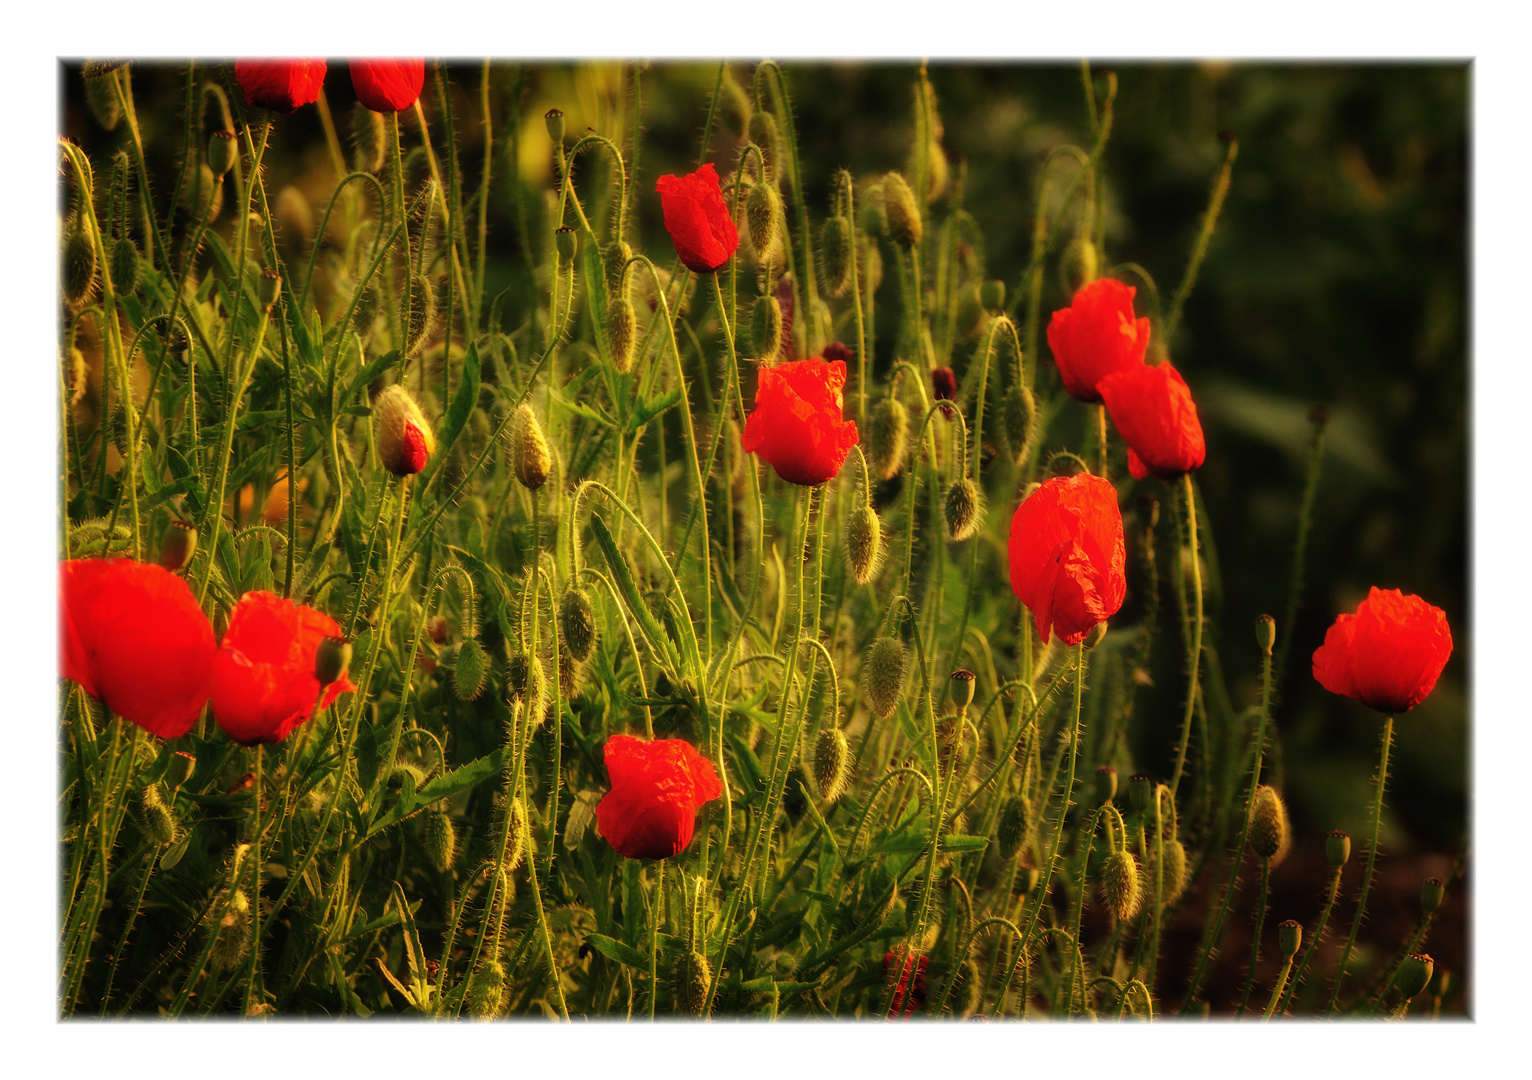 evening sun on poppies ...